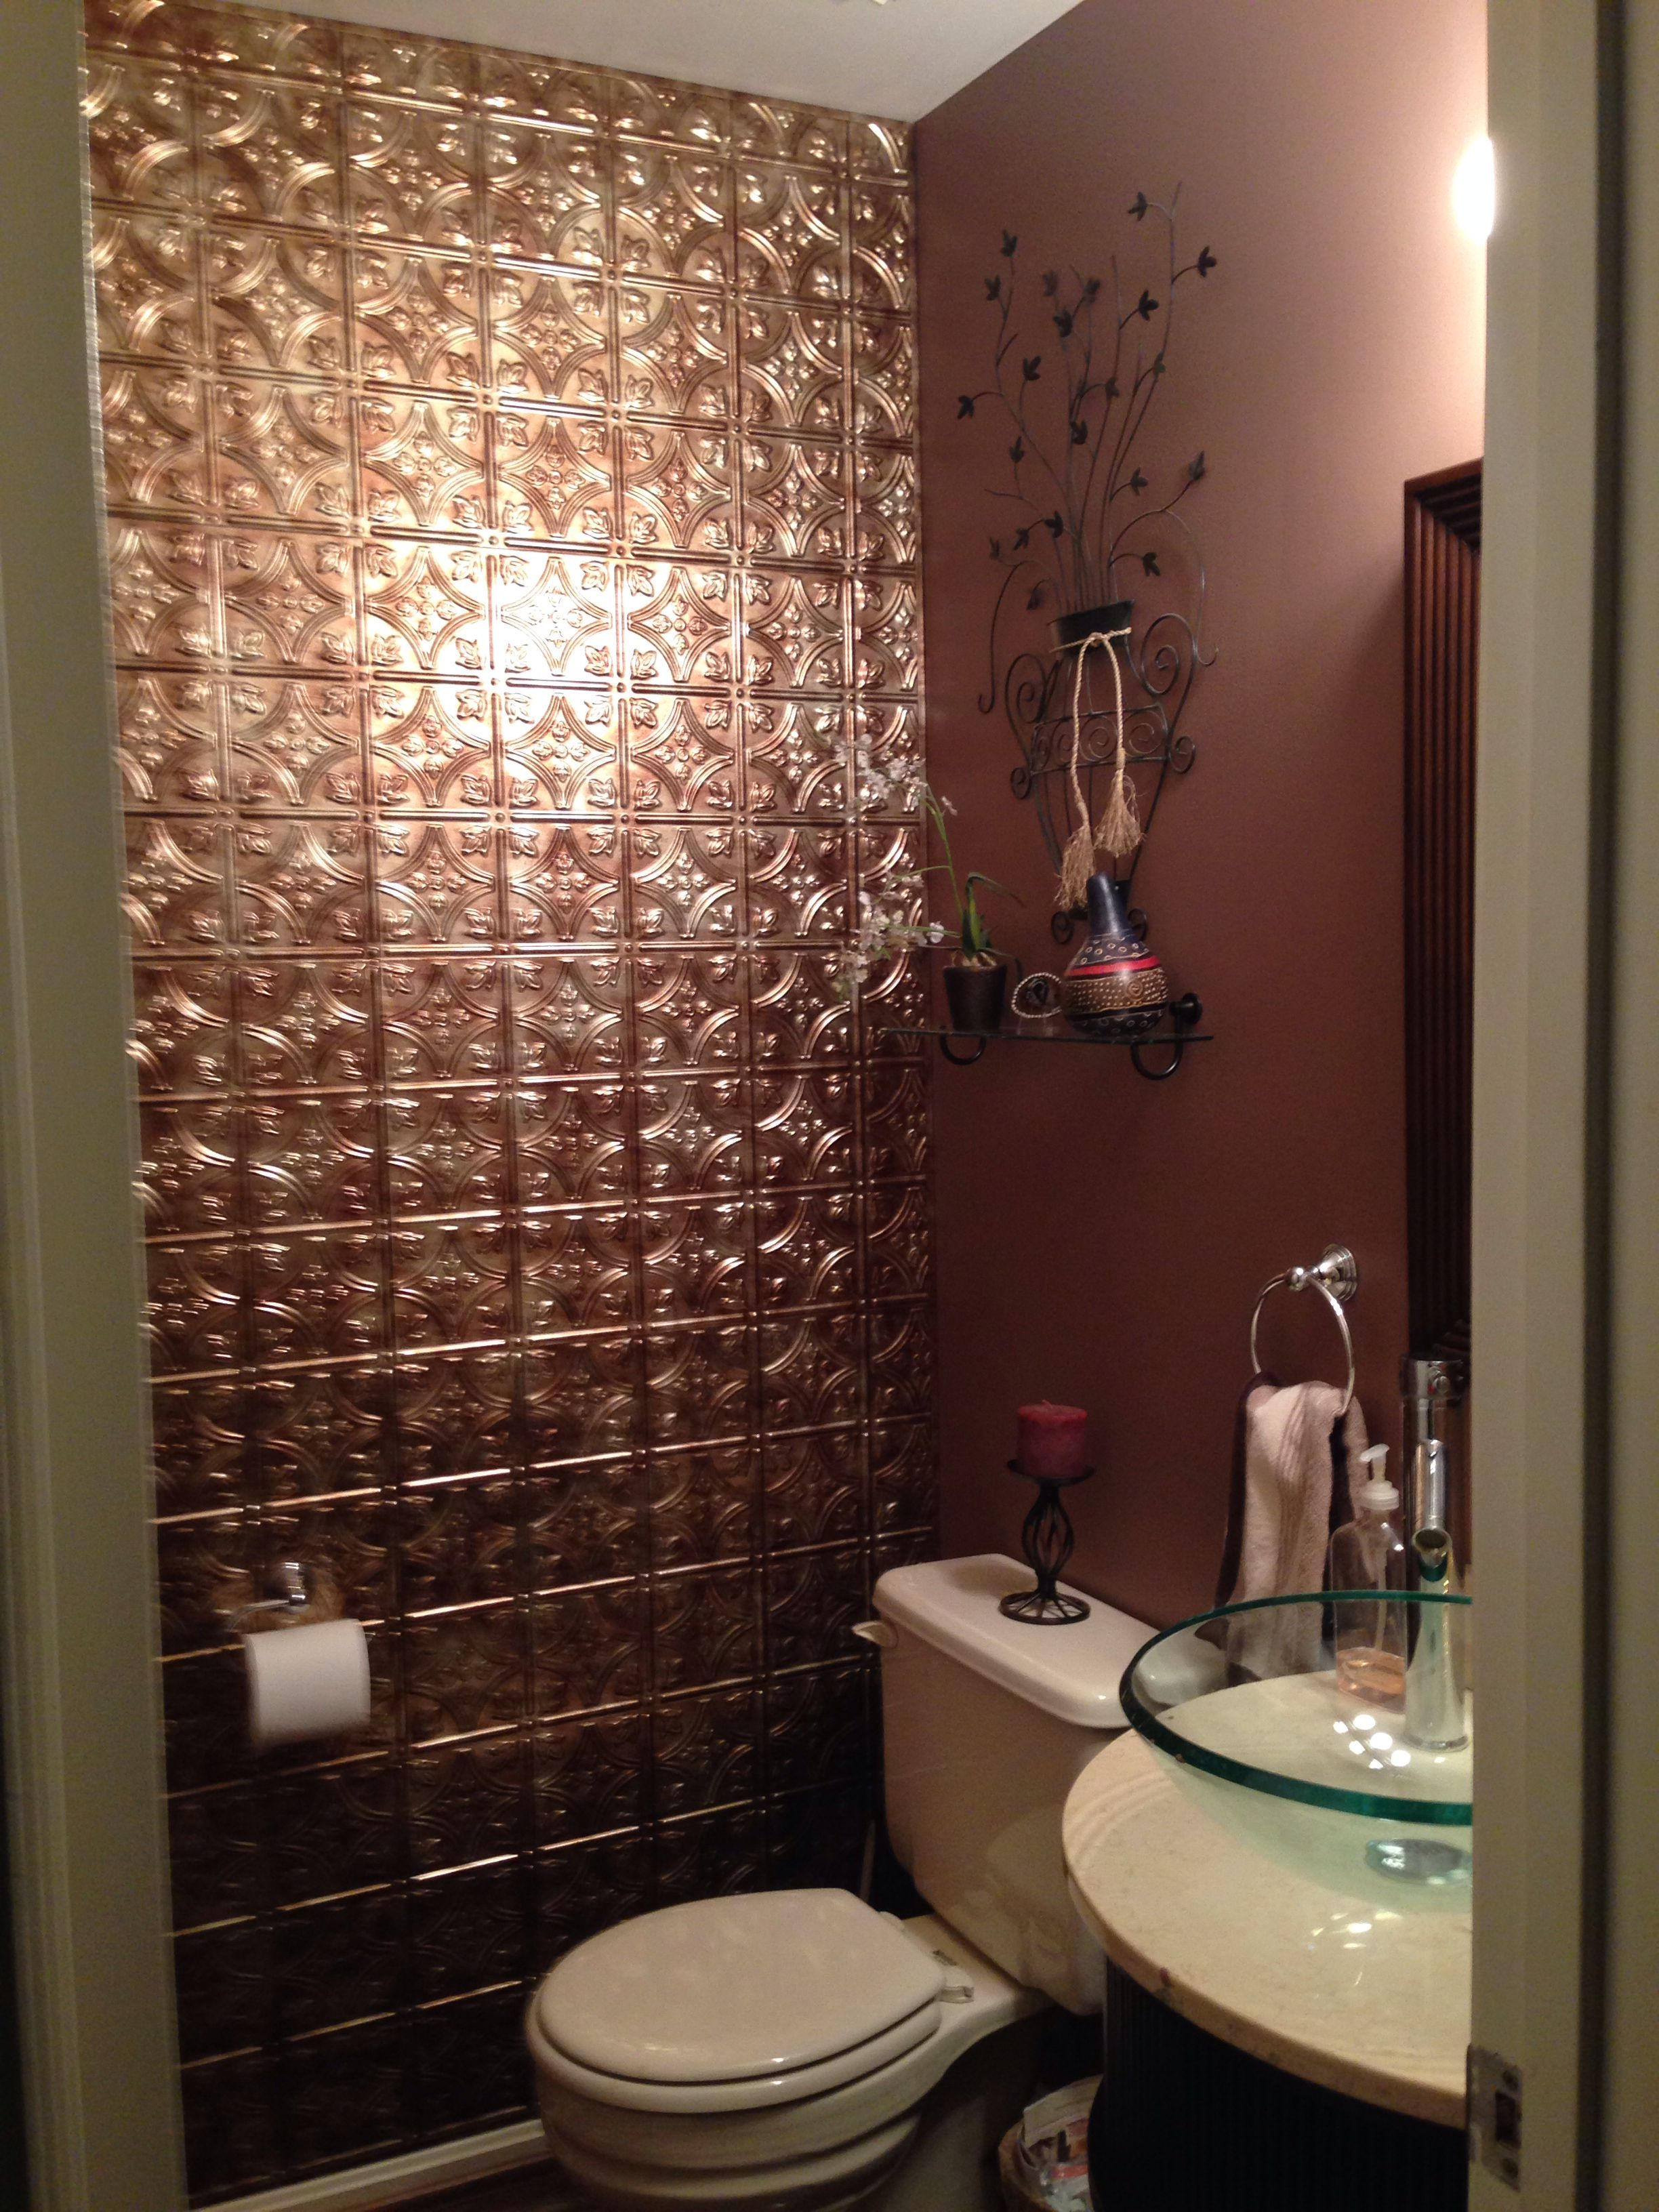 Tin Backsplash Tiles Used On Entire Wall As Accent Wall In